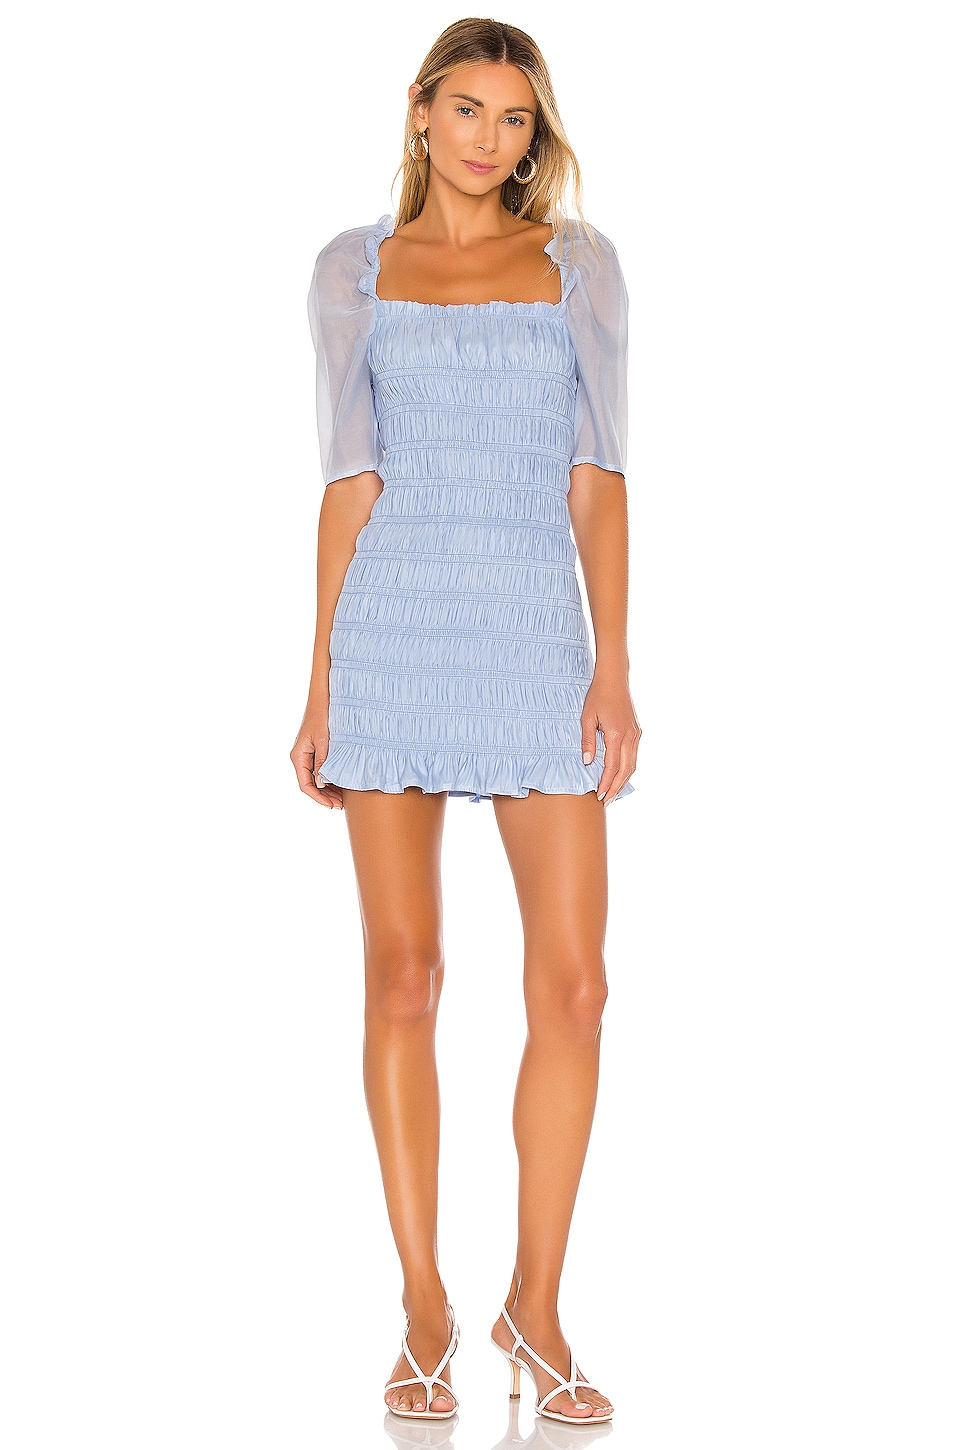 MAJORELLE Jex Dress in Light Blue